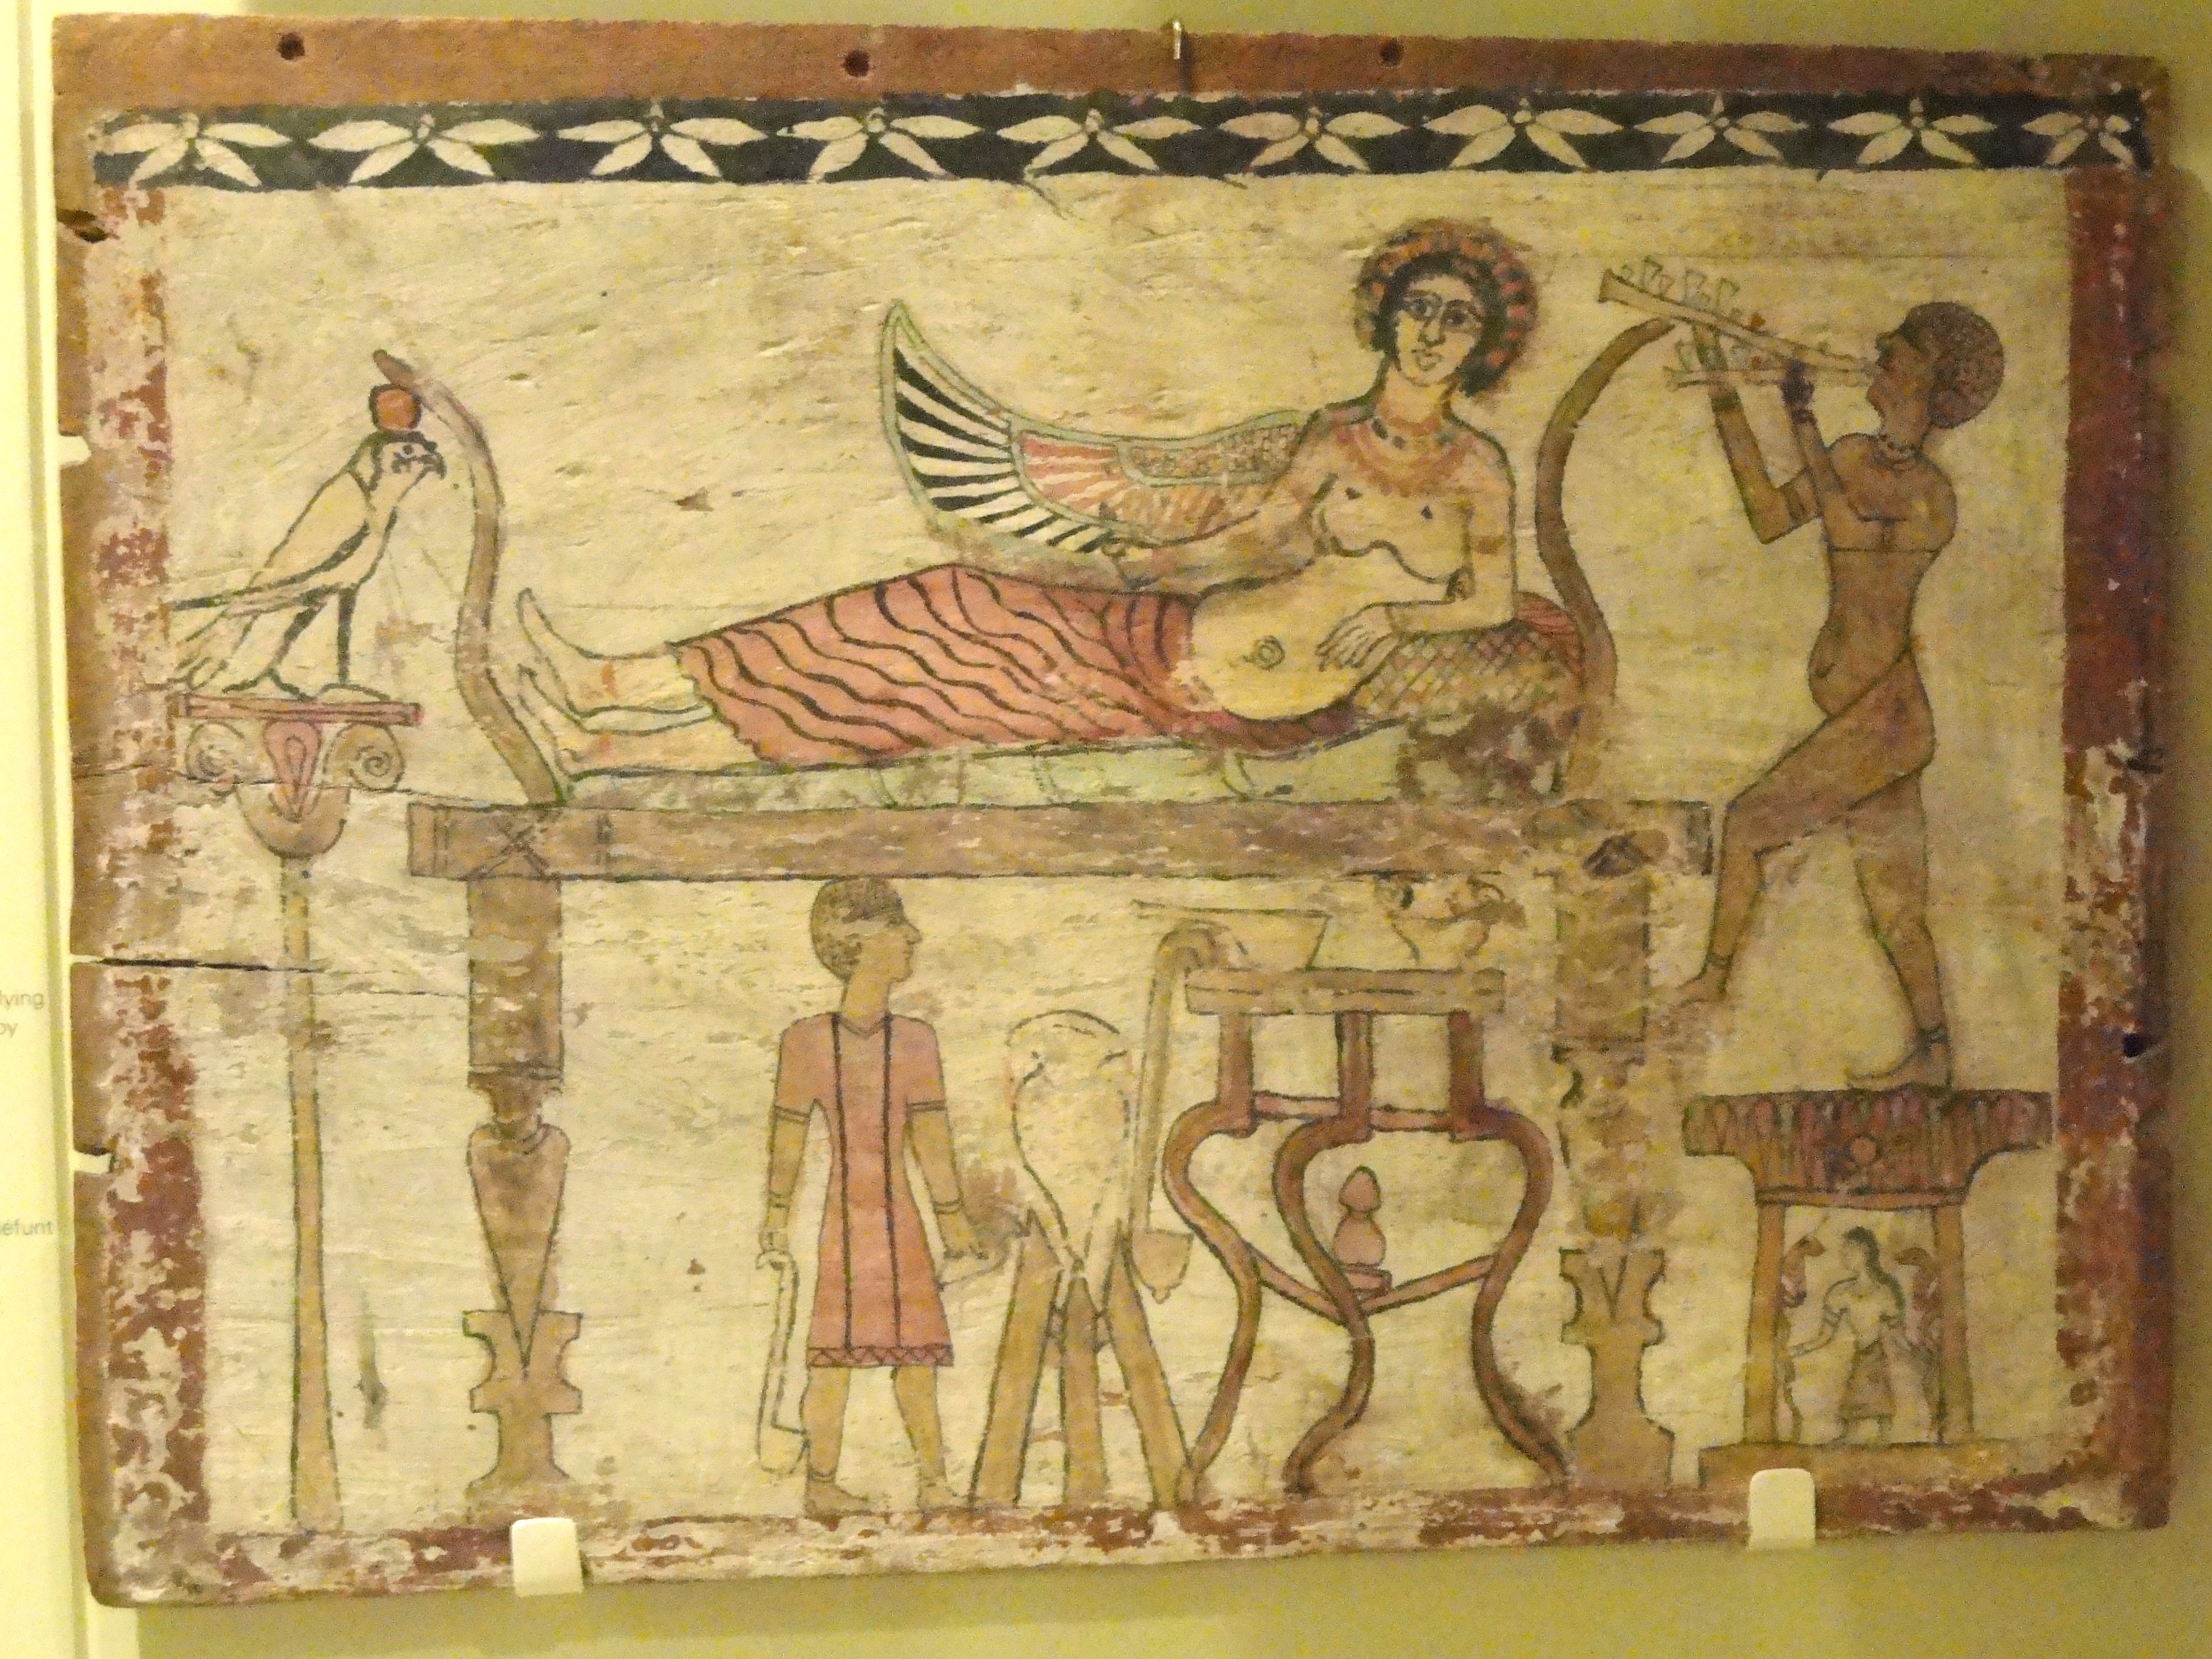 https://i2.wp.com/upload.wikimedia.org/wikipedia/commons/7/76/Coffin_floorboard_depicting_Isis_being_served_wine_by_the_deceased%2C_Egypt%2C_Roman_Period%2C_30_BC_-_AD_324_-_Royal_Ontario_Museum_-_DSC09735.JPG